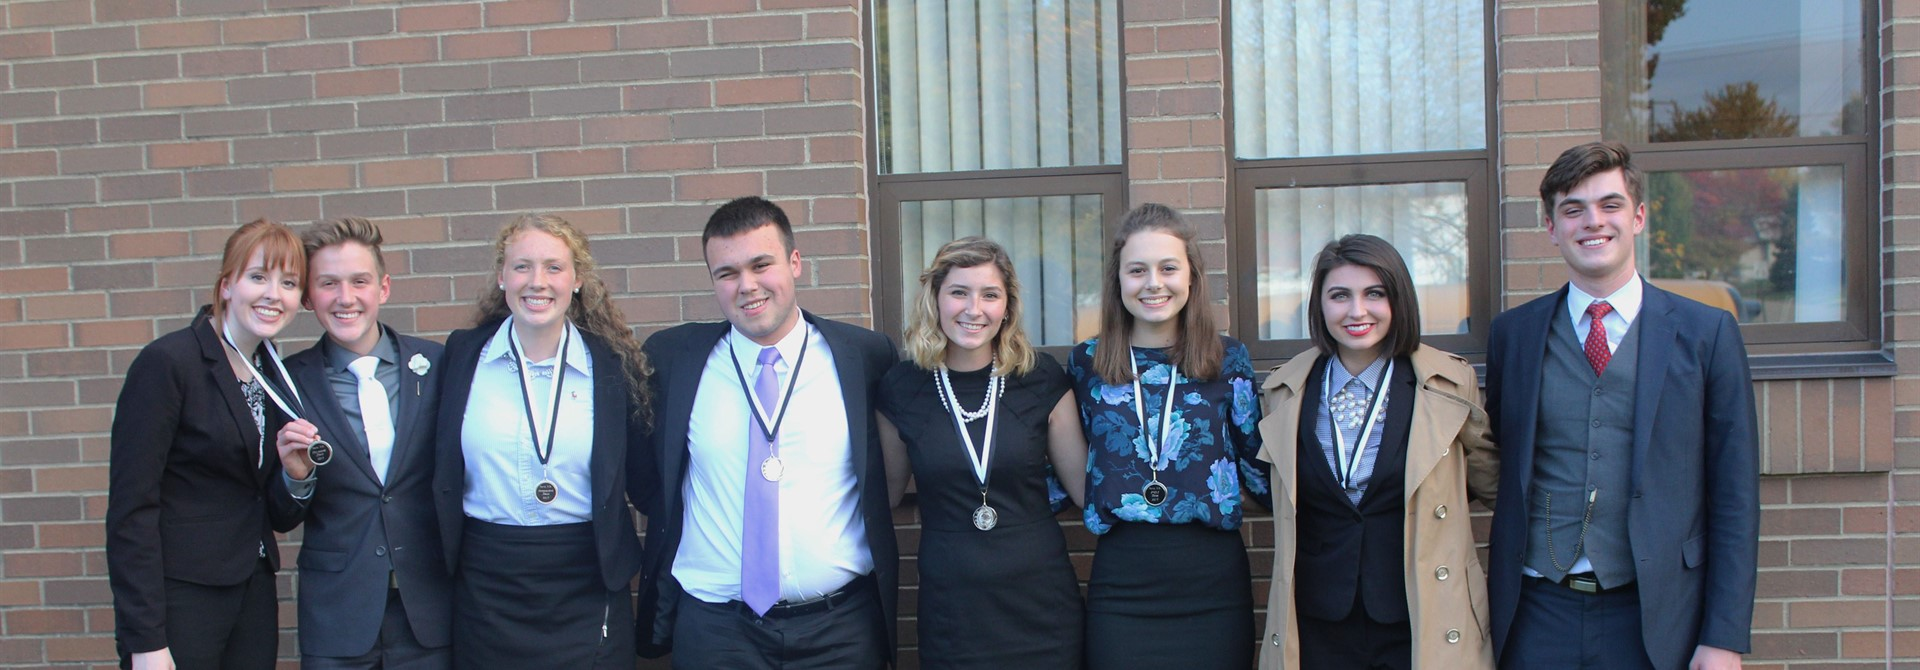 HHS Speech & Debate Team Members